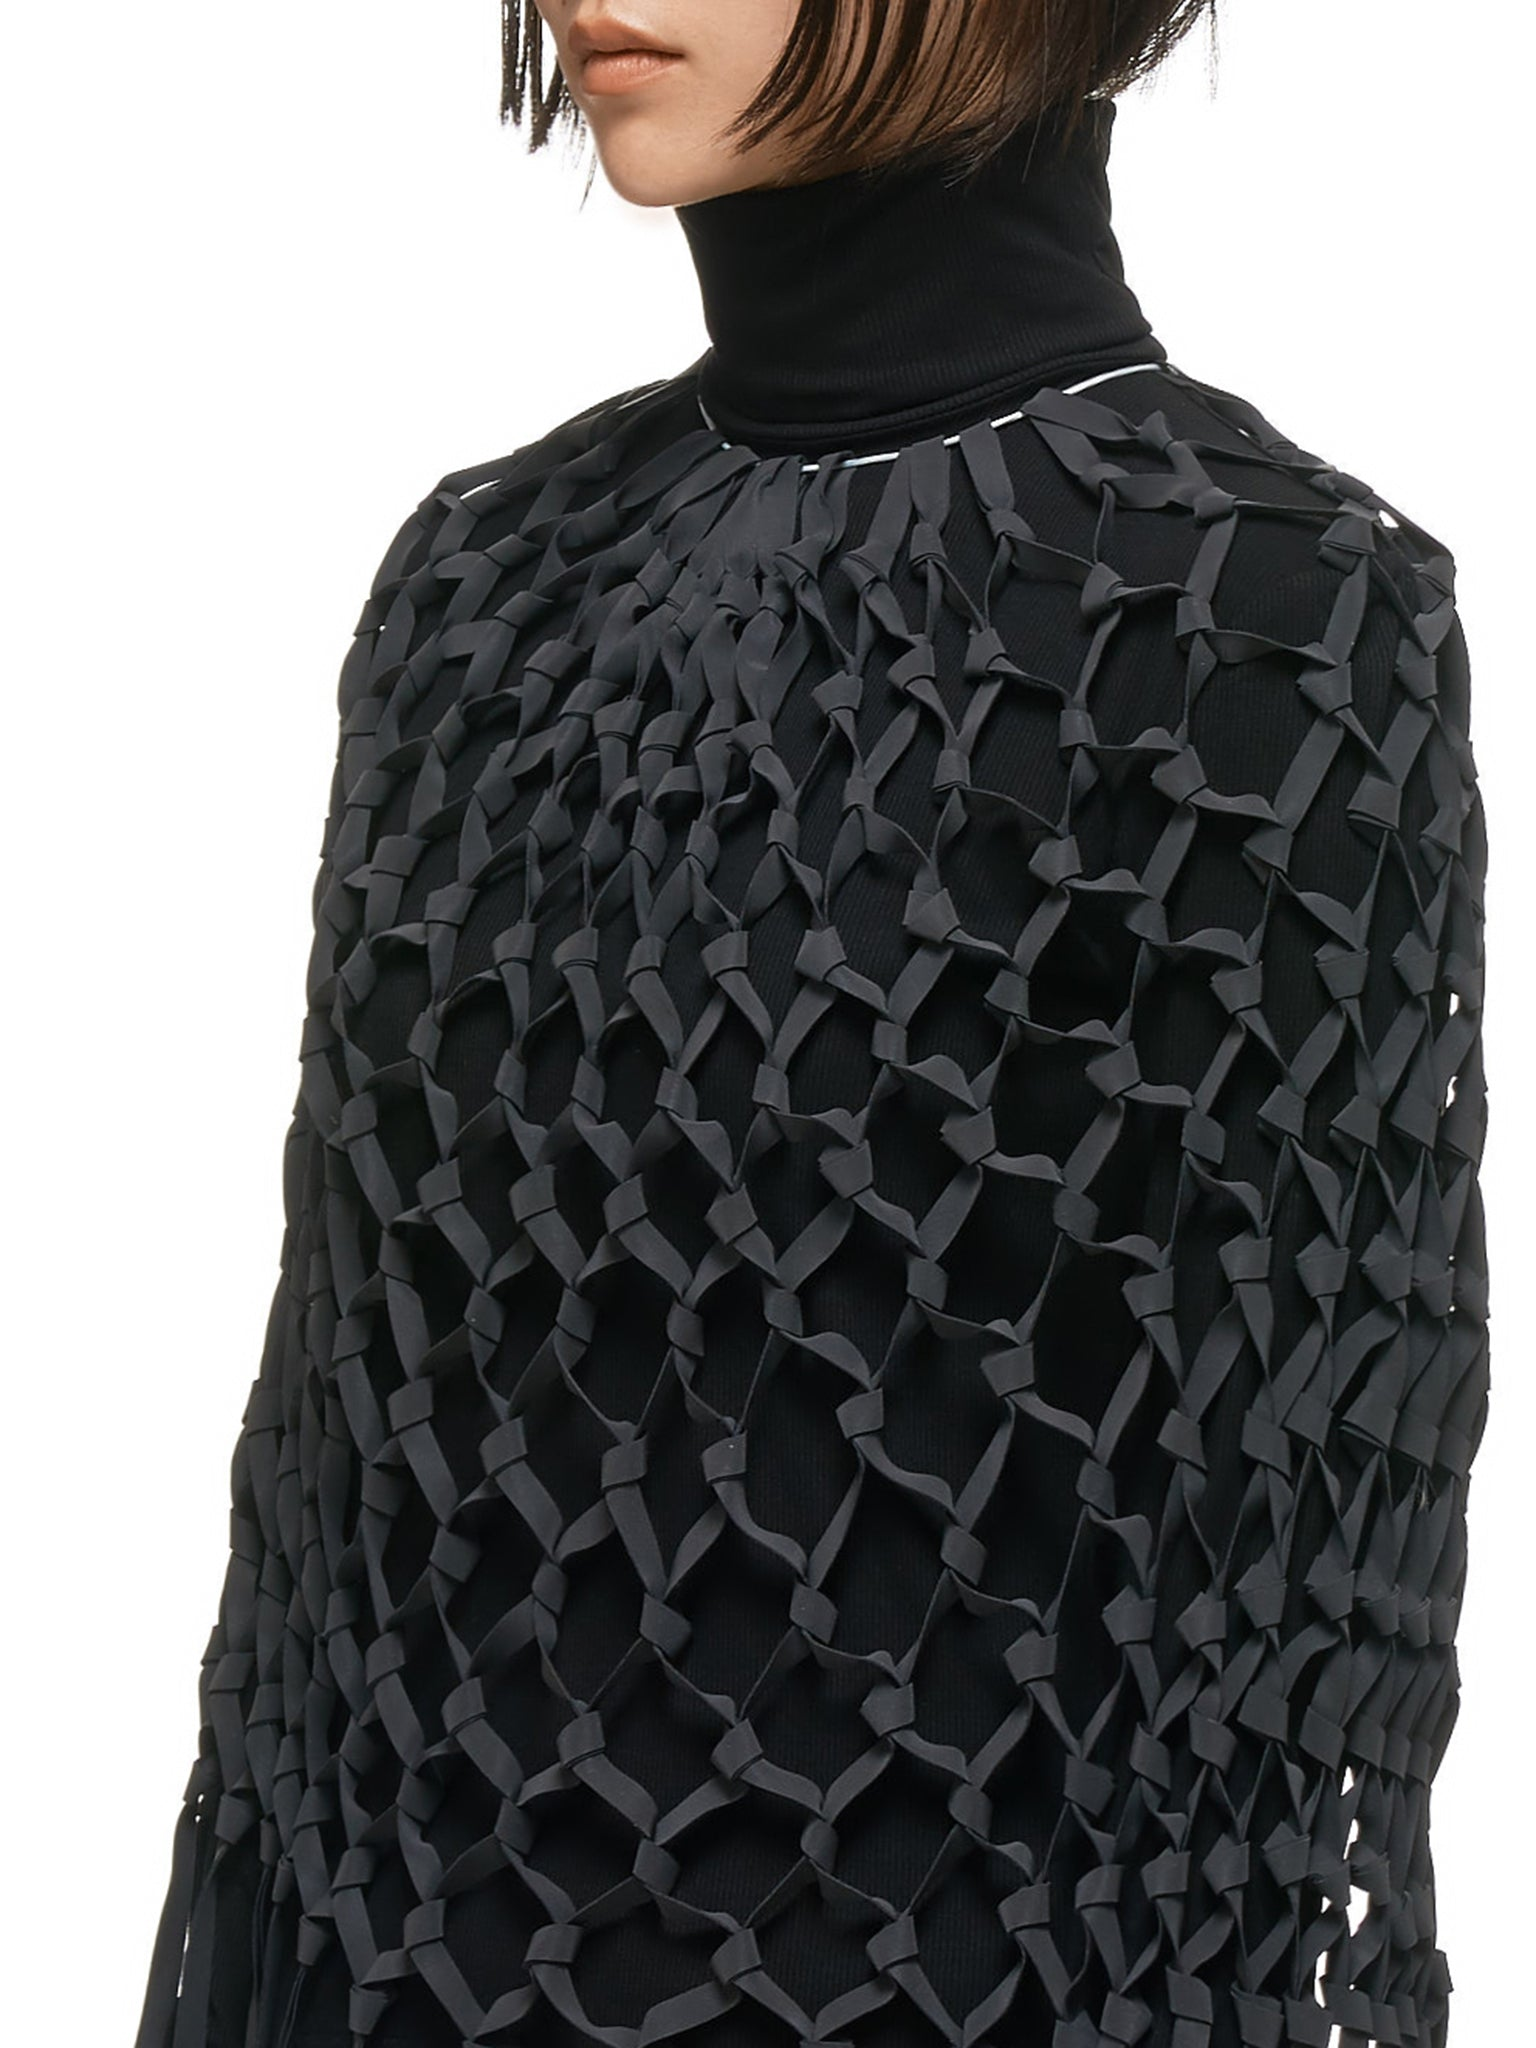 Xiao Li Turtleneck Top - Hlorenzo Detail 1